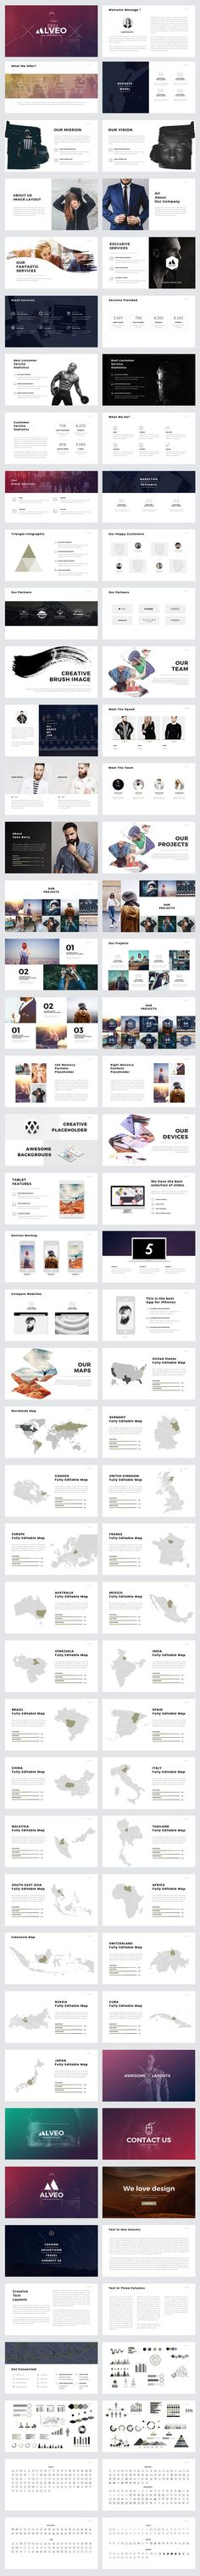 Alveo #Minimal #PowerPoint Template by Slidedizer Licenses Offered StandardExtendedFile Types PDF, PSD, All FilesFile Size 142.46 MBLayered YesVector Yes